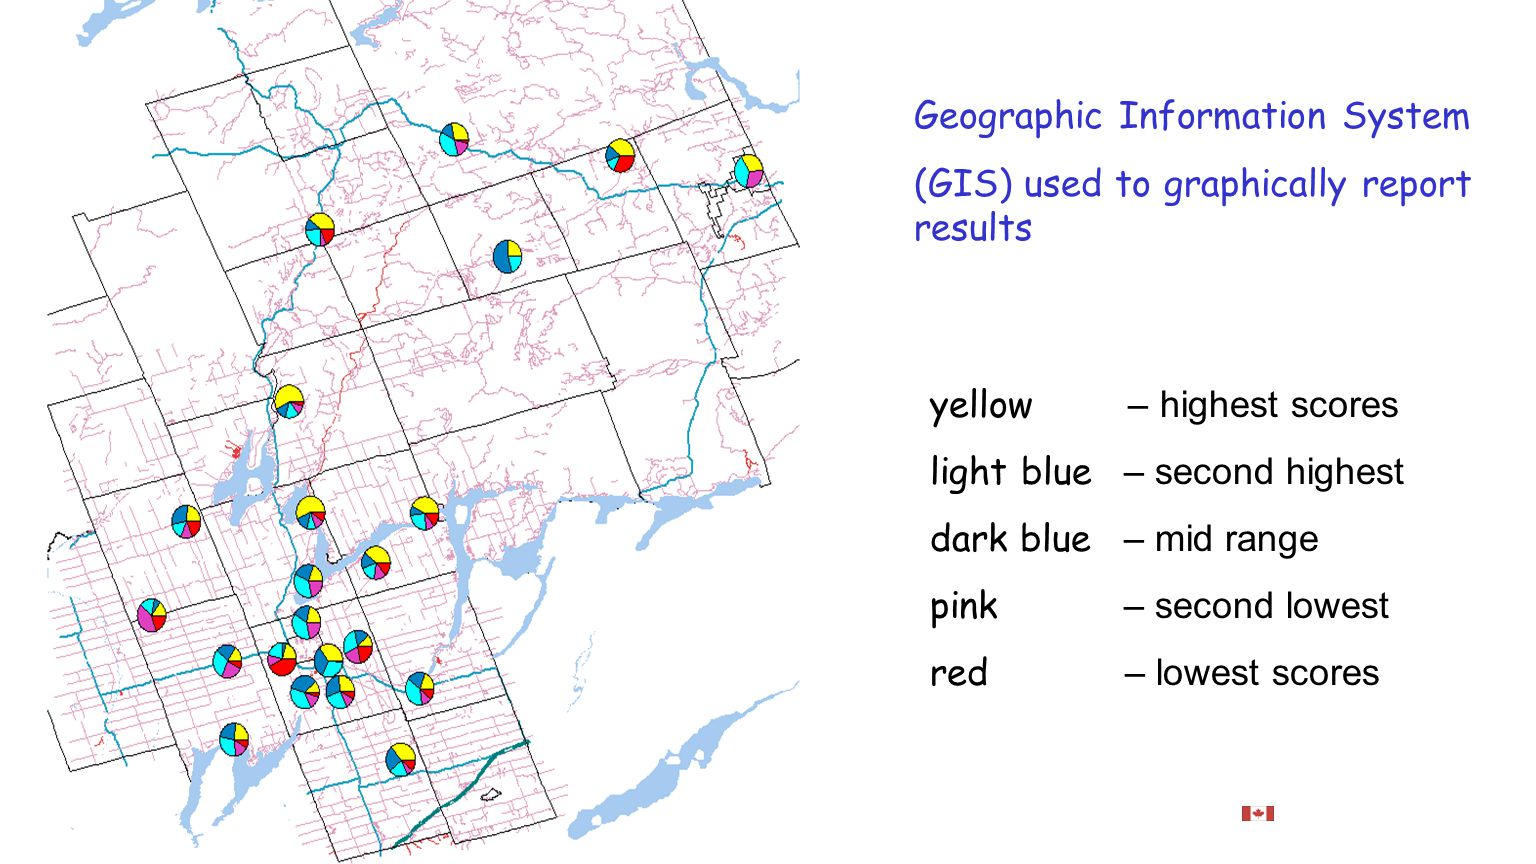 yellow – highest scores light blue – second highest dark blue – mid range pink – second lowest red – lowest scores Geographic Information System (GIS) used to graphically report results